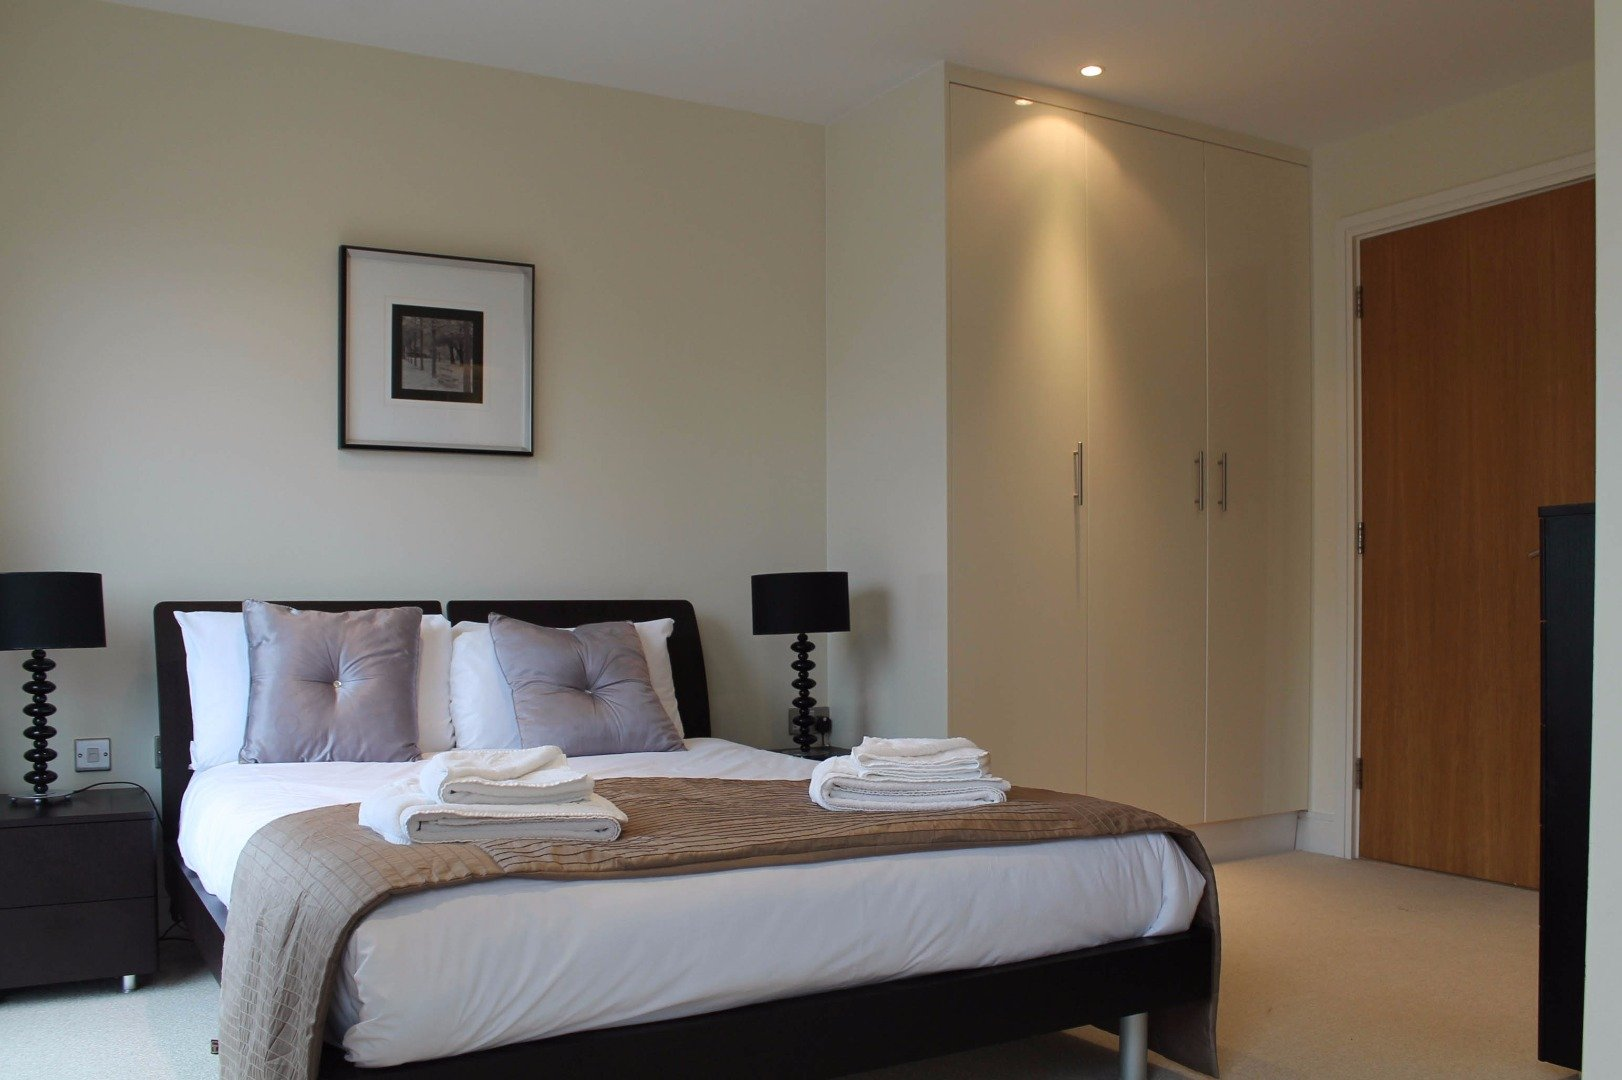 Looking-for-apartments-in-Canary-Wharf?-why-not-book-out-lovely-Canary-Wharf-Modern-Apartments-for-coporate-or-leisure-stays.-Call-today-for-great-rates.